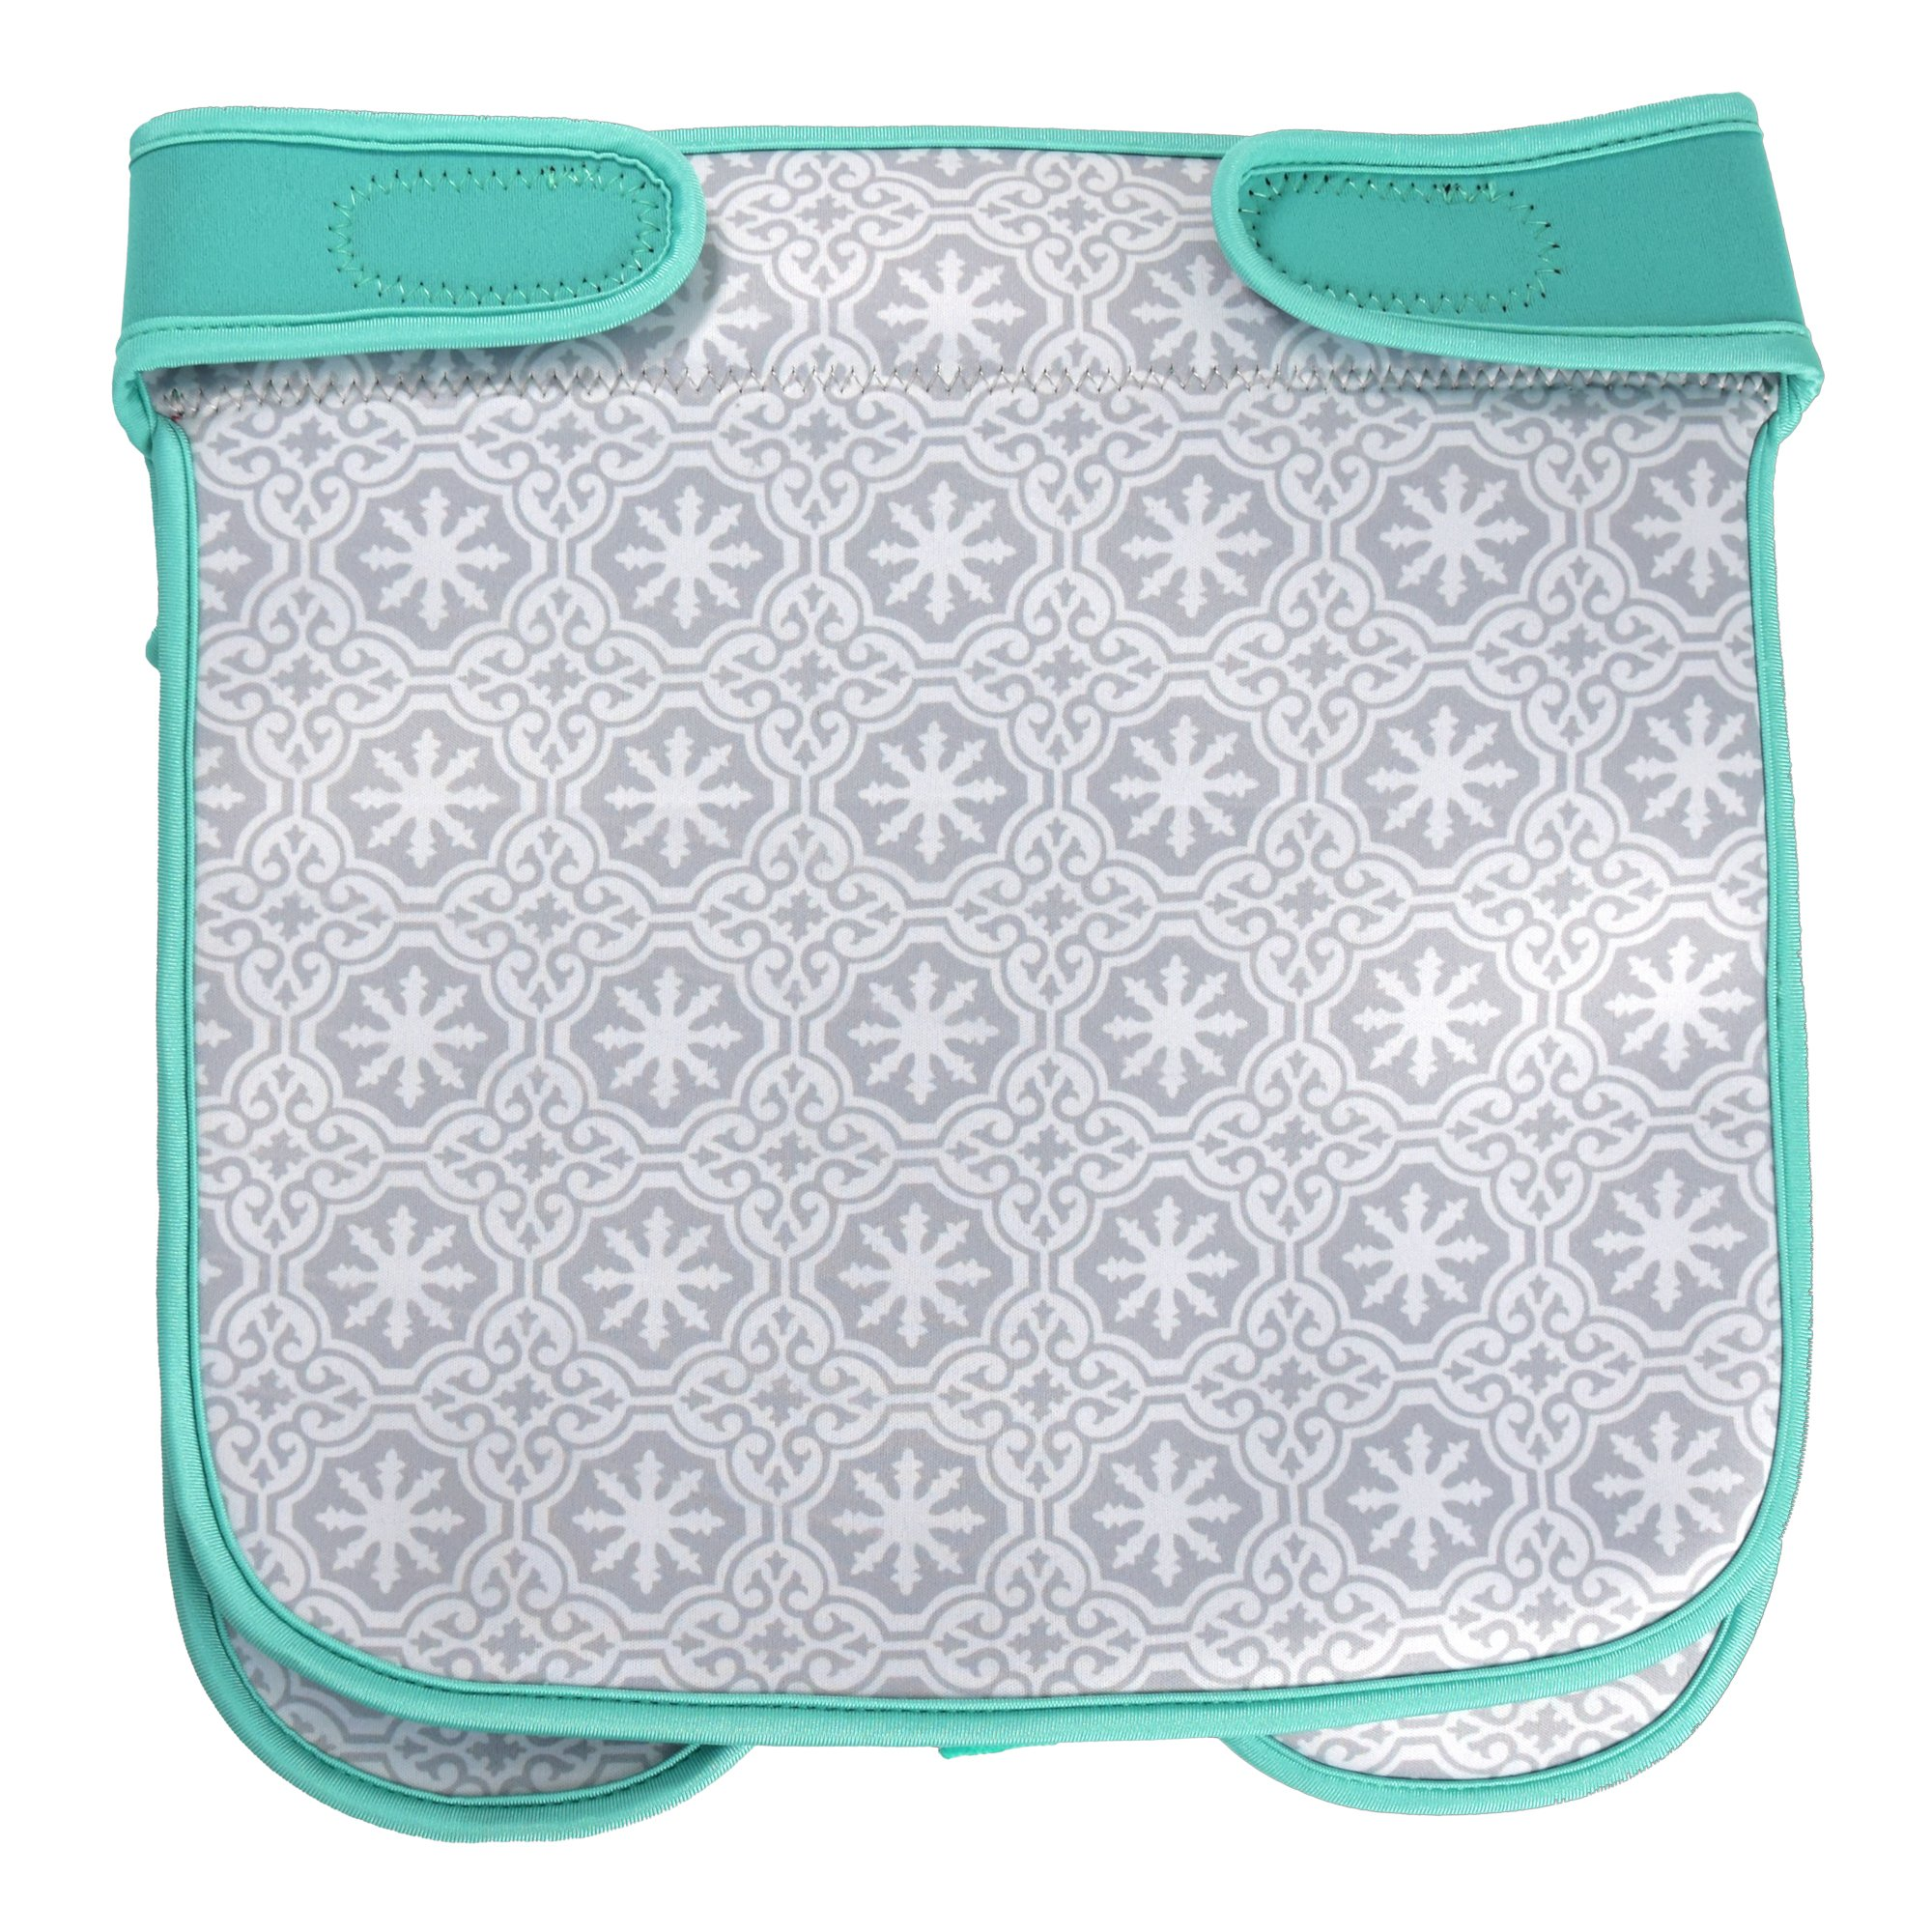 Baby Stroller Caddy Storage Organizer - Cup, Bottle and Diaper Holder for Stroller Accessories Bag - Universal Umbrella Stroller Organizer with Cup Holders - Perfect Baby Shower Gift (Turquoise) by Sunshine Nooks (Image #9)